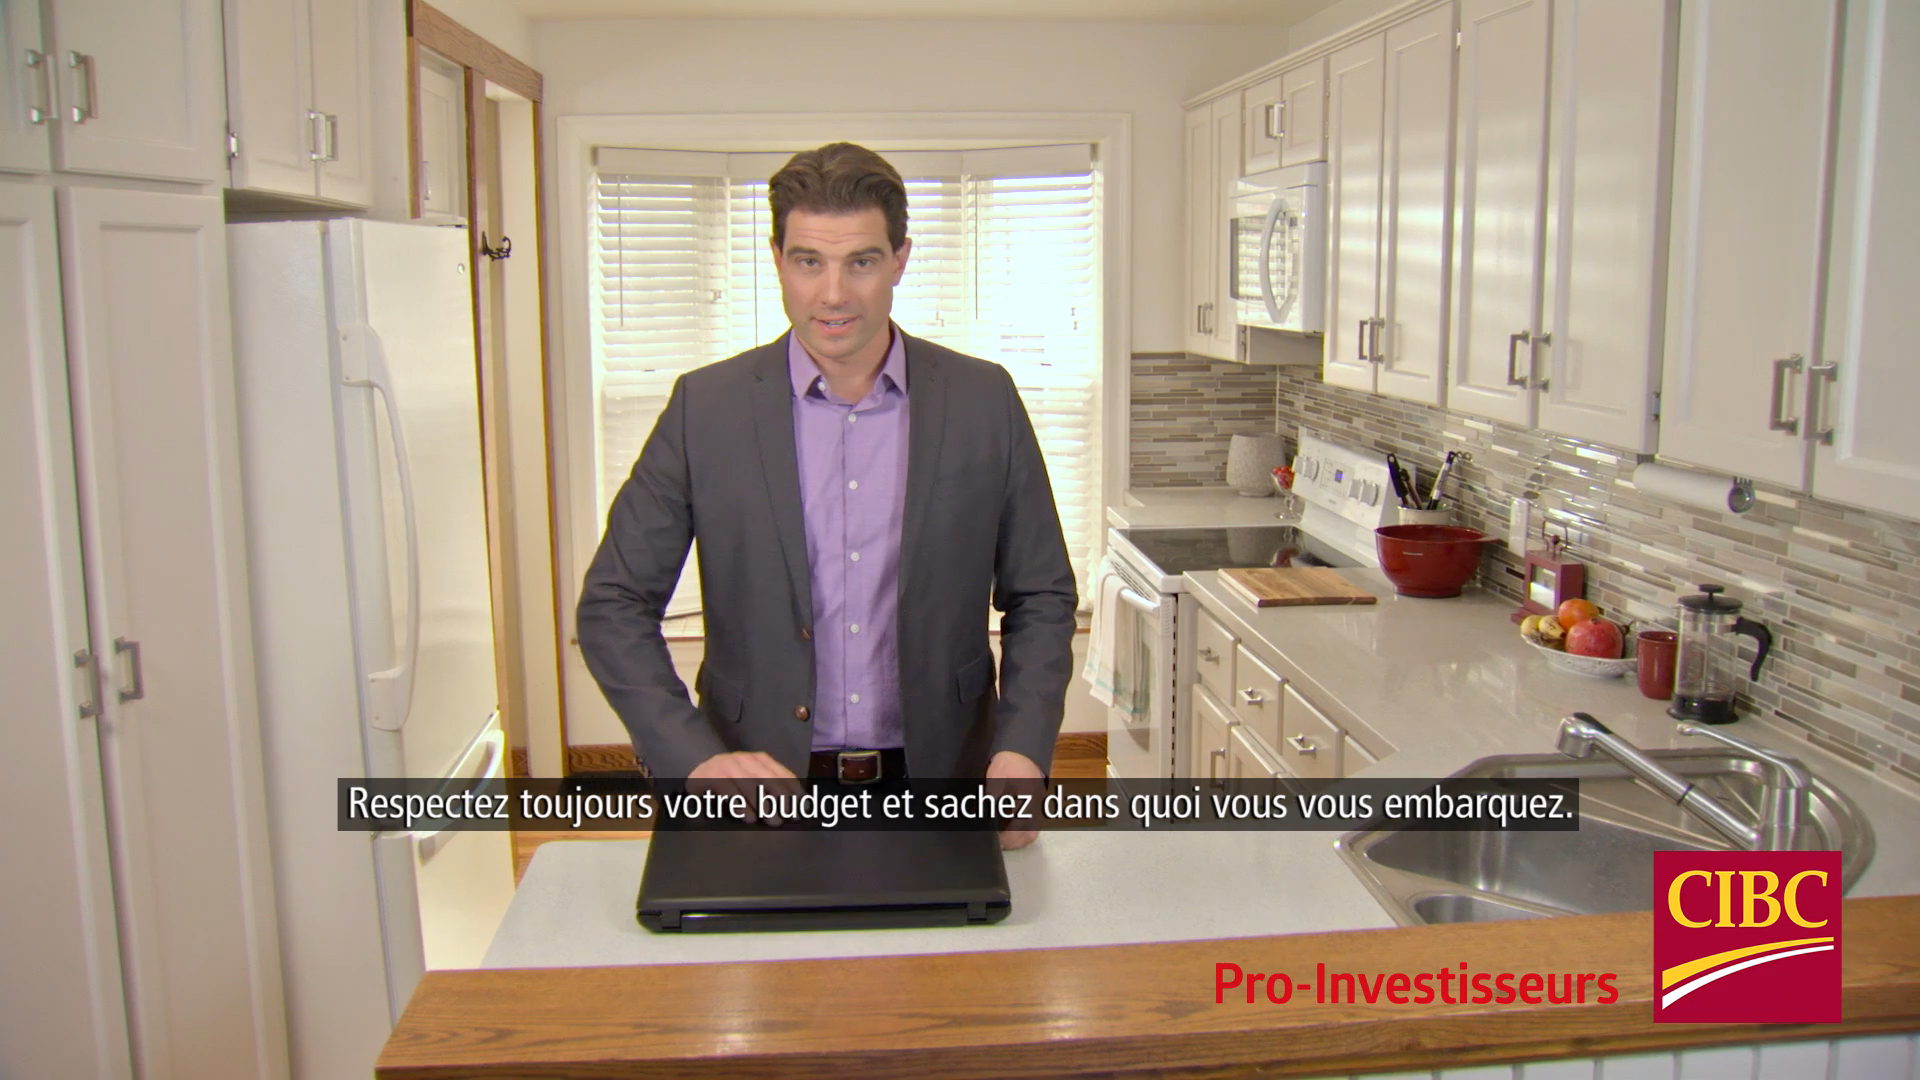 20931_FR_CIBC_Investors Edge_Episode 4 - Value_FINAL_Video ID-21095